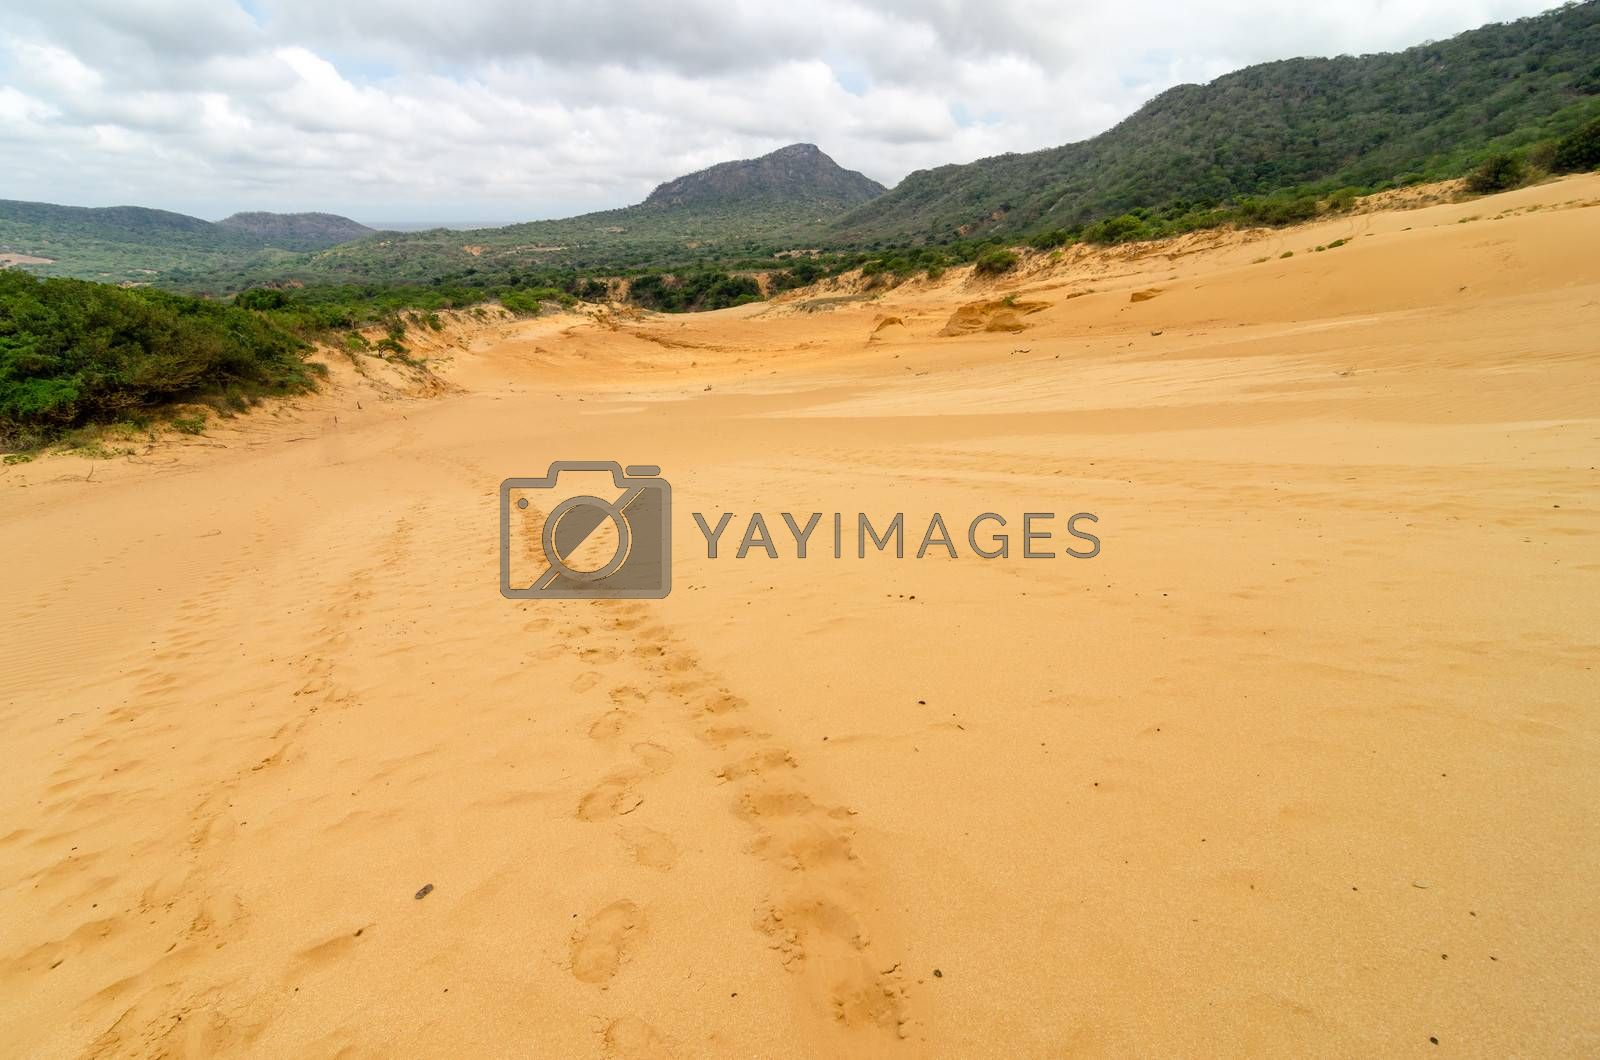 Footprints going up a sand dune in Macuira National Park in La Guajira, Colombia